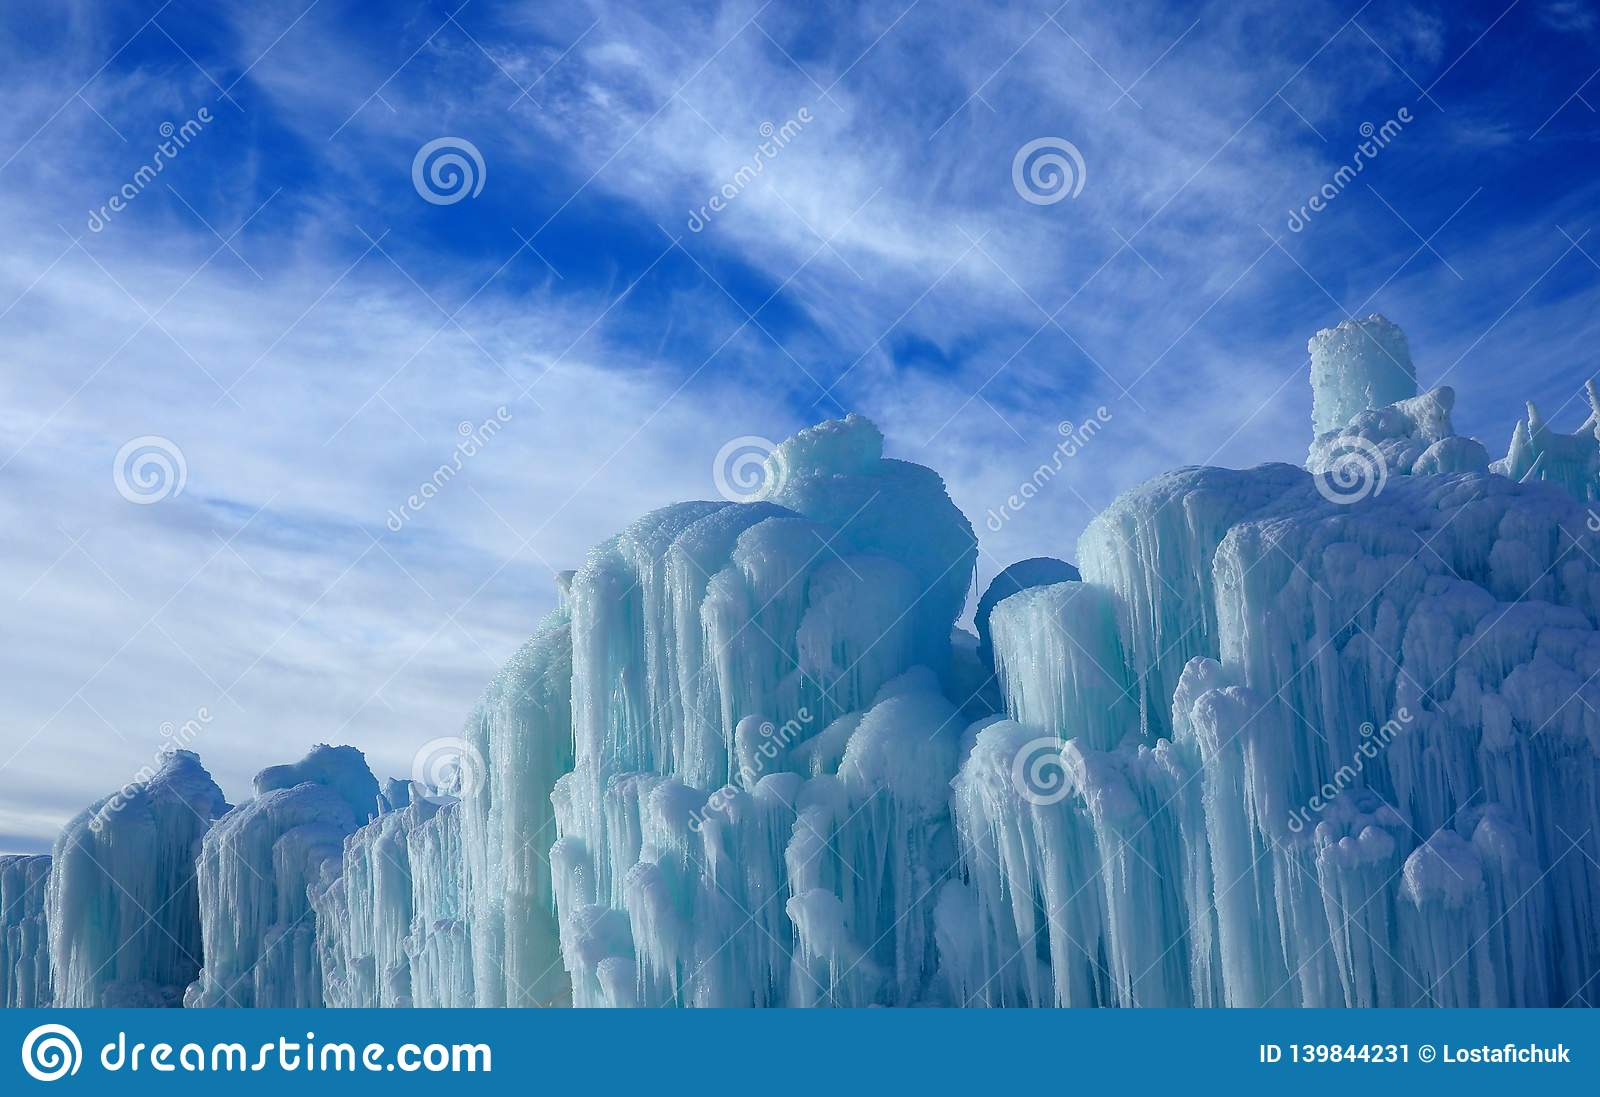 Abstract Ice Sculptures Against A Partially Cloudy Sky